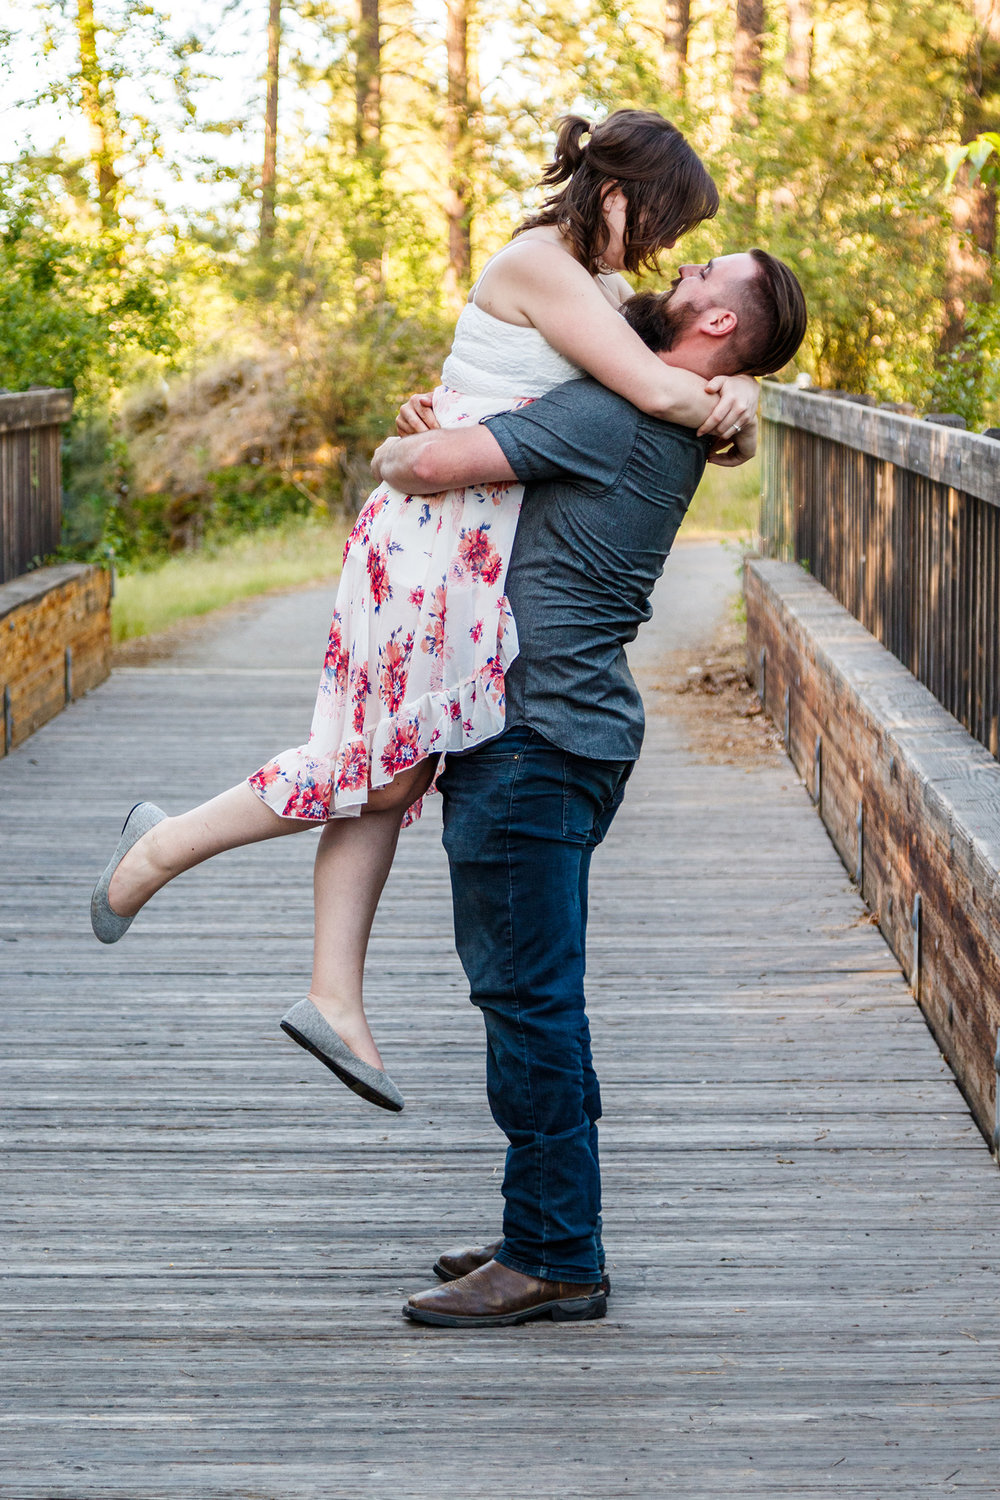 Jon & Ashley Engagement Session-20180602_064.jpg